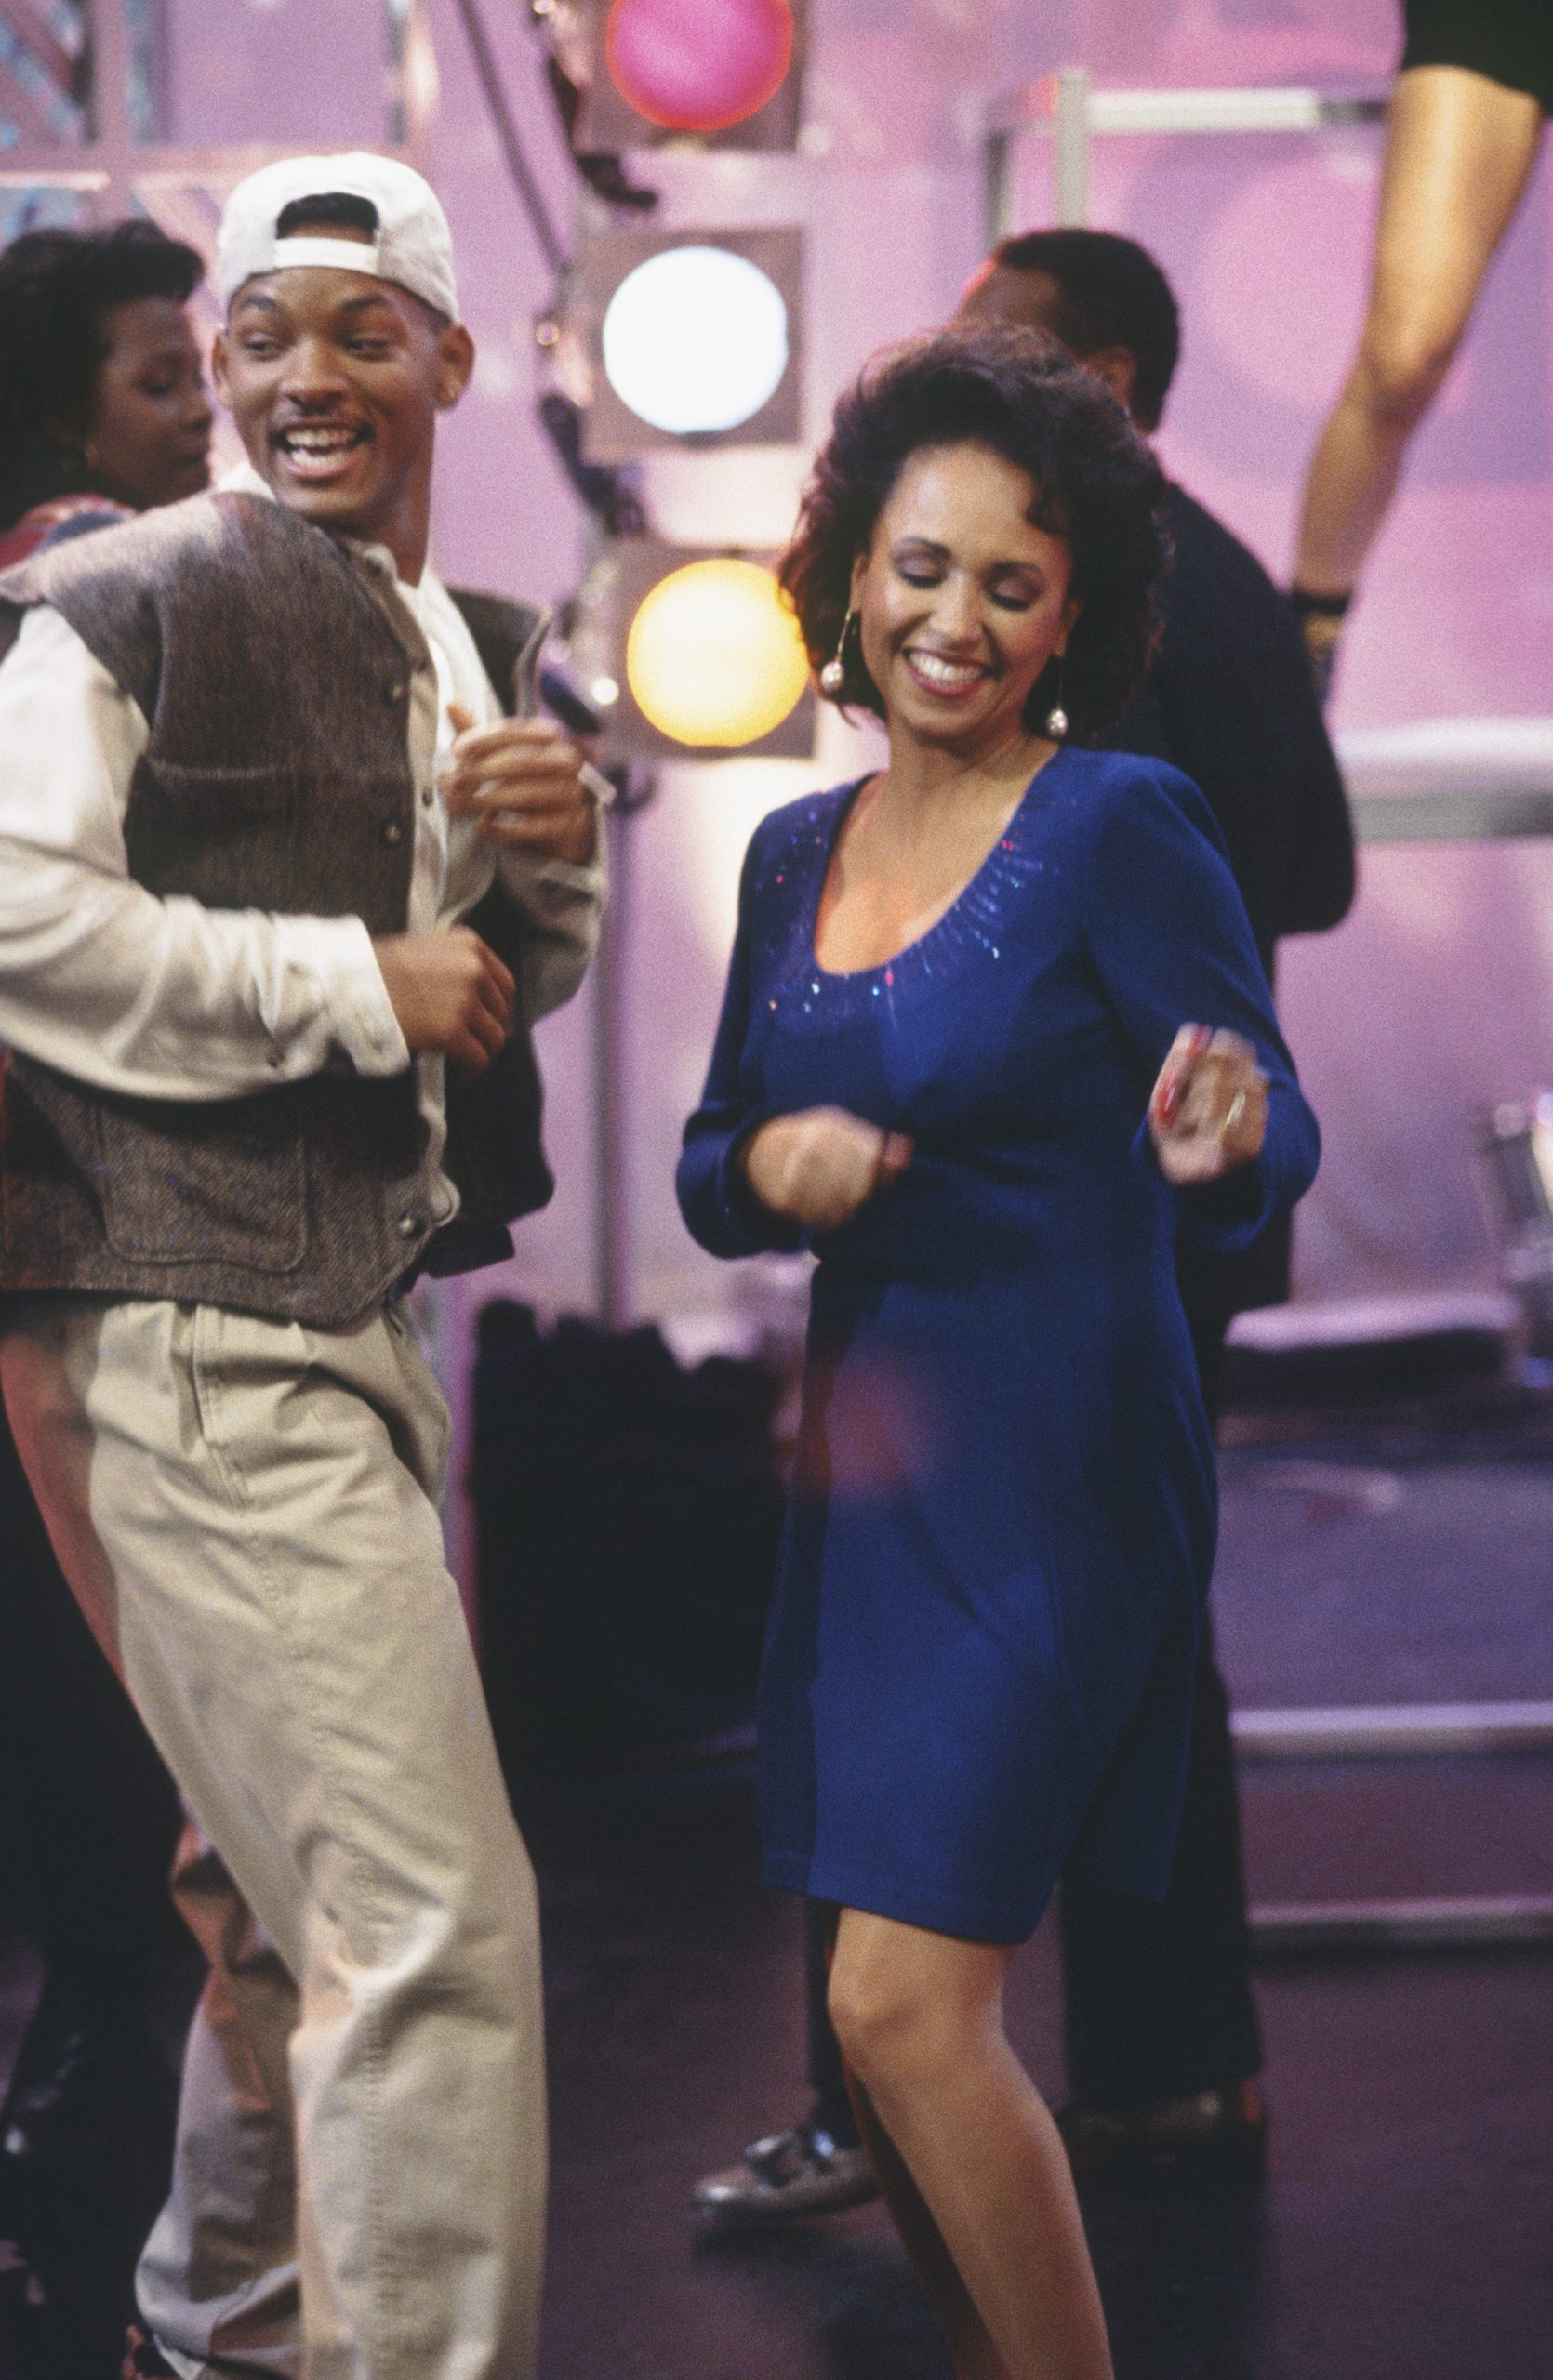 """THE FRESH PRINCE OF BEL-AIR -- """"Soooooooul Train"""" Episode 8 -- Air Date 11/07/1994 -- Pictured: (l-r) Will Smith as William 'Will' Smith, Daphne Reid as Vivian Banks"""